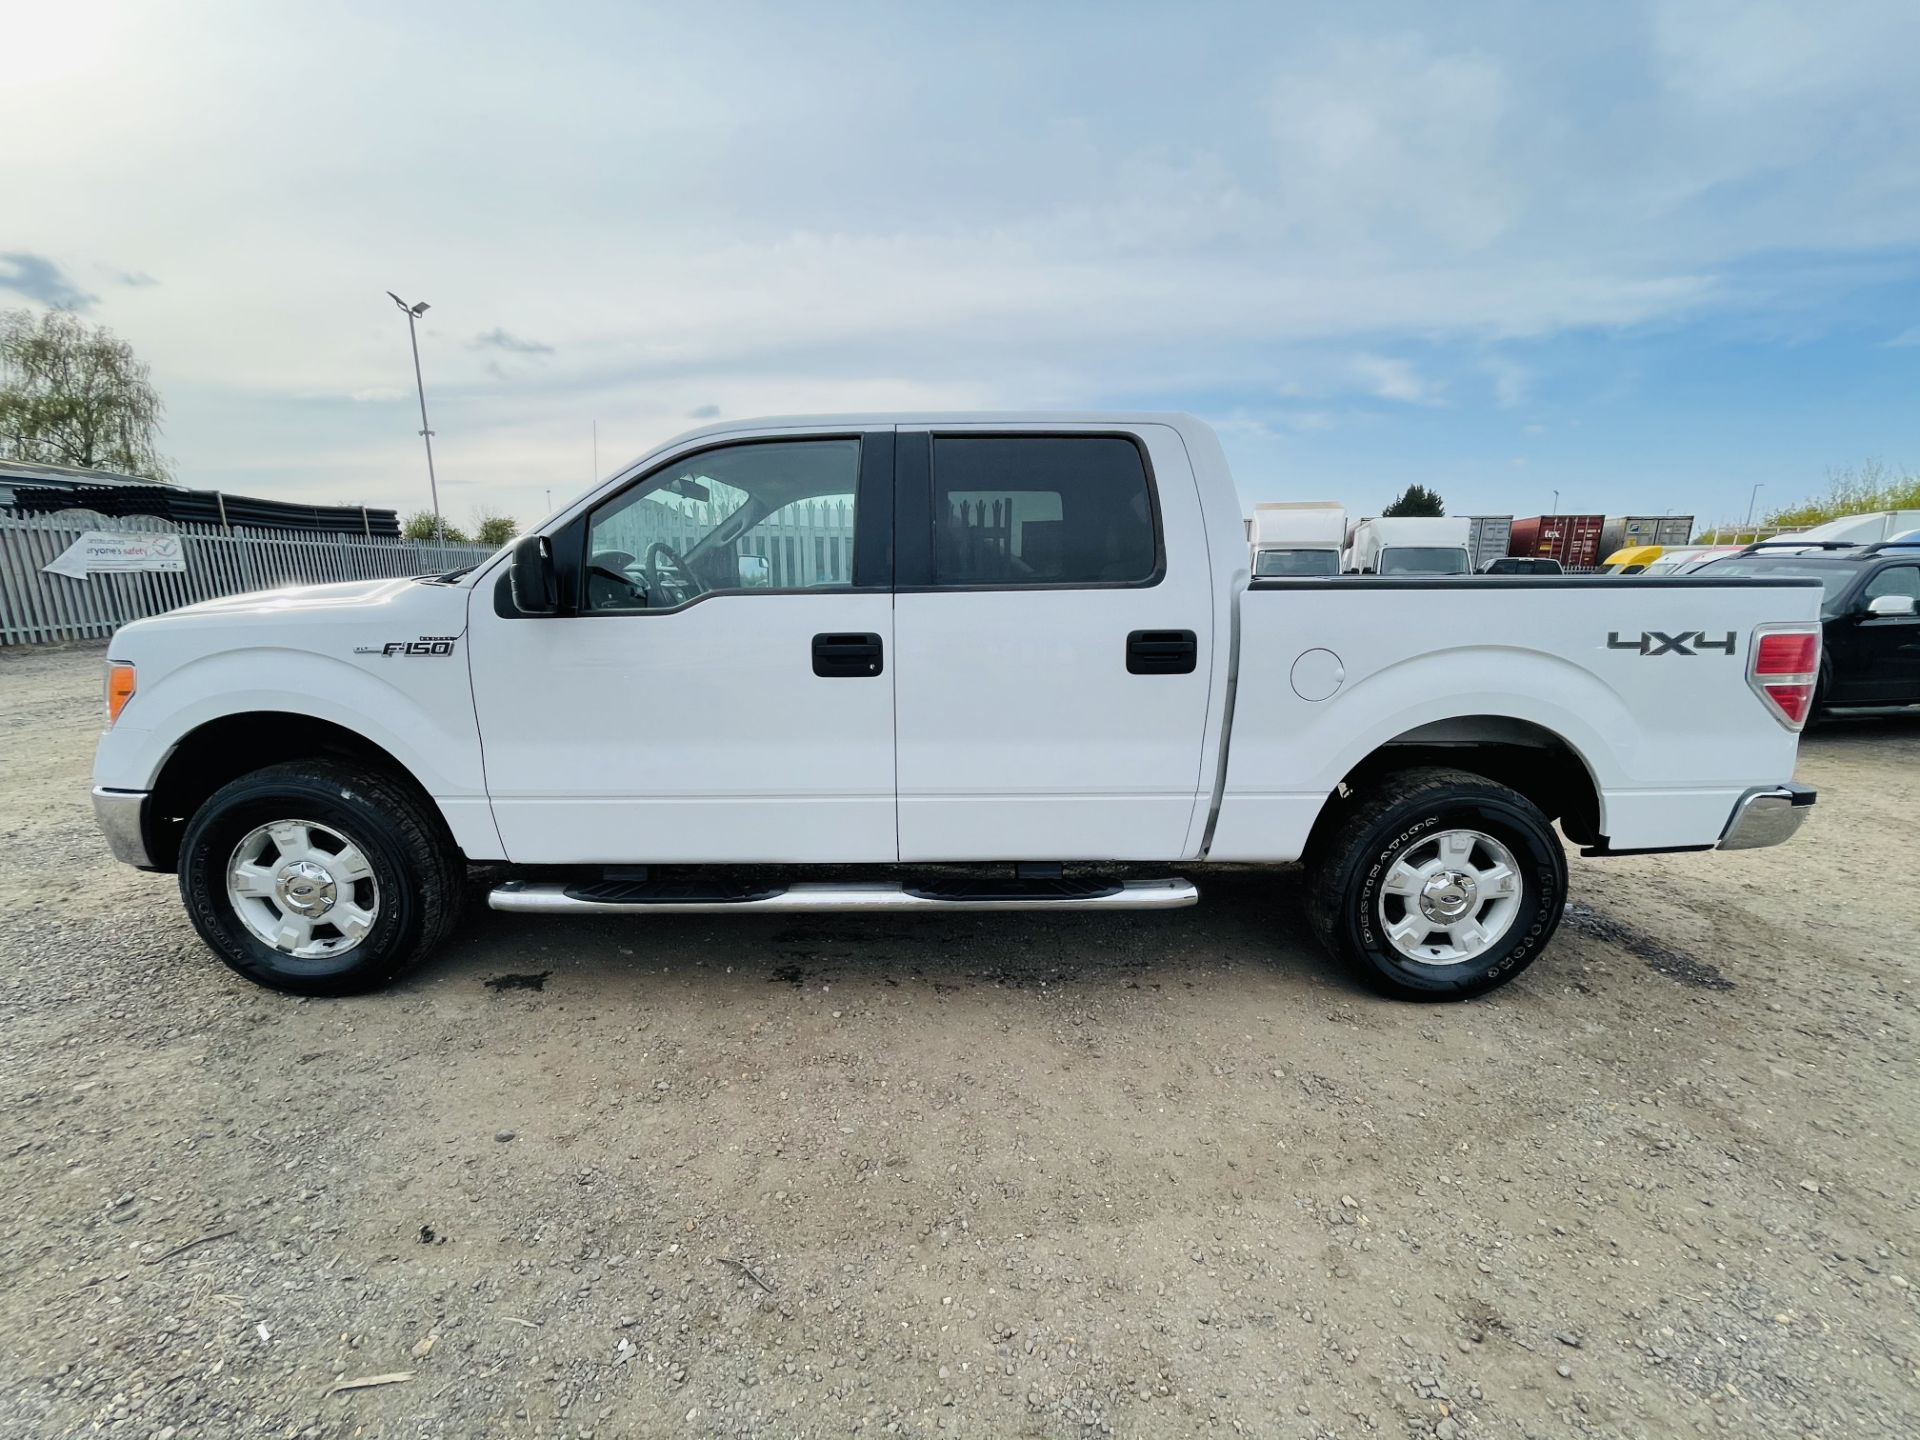 Ford F-150 XLT 4.6L V8 Super-crew 4WD 2010 ' 2010 Year' 6 Seats - Air con - NO RESERVE - Image 6 of 24